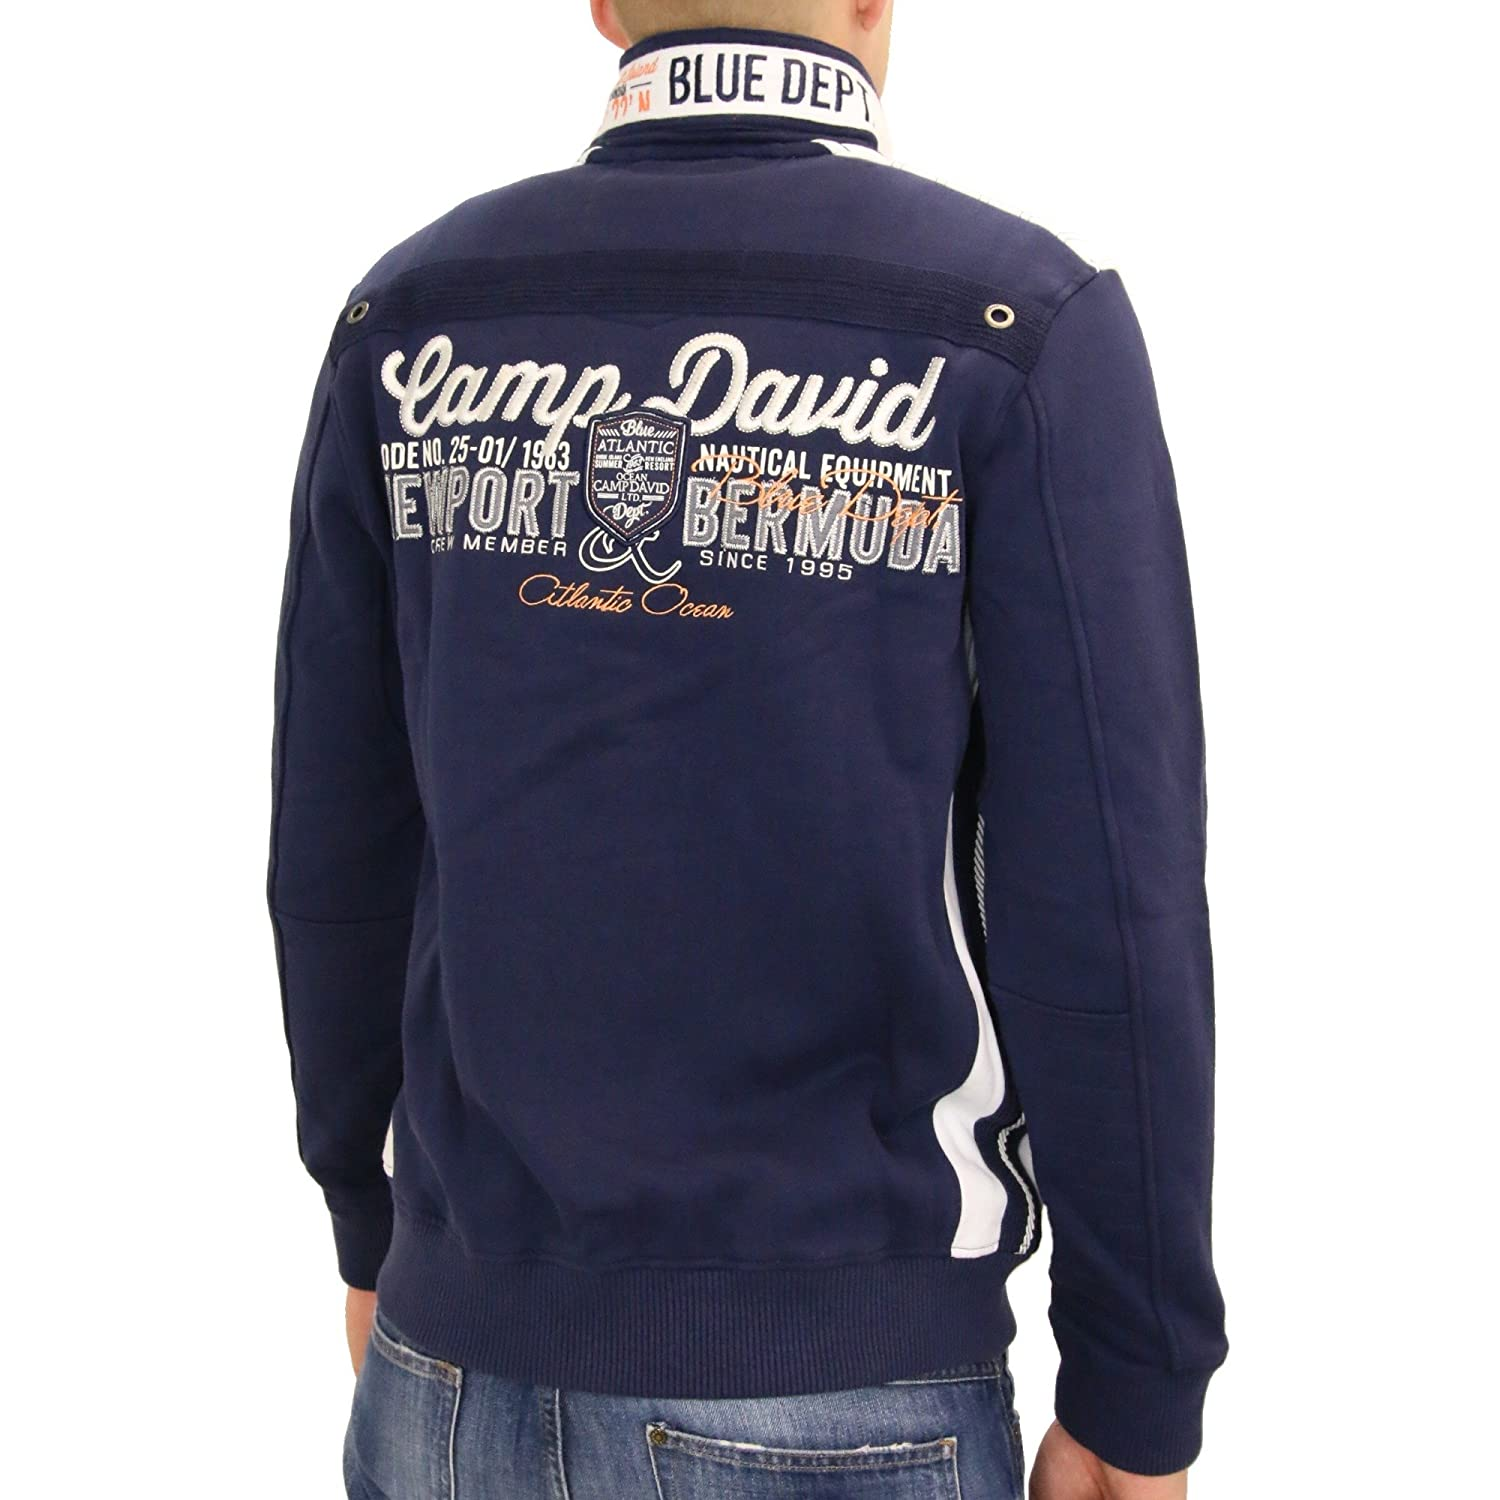 preview of for whole family high quality Camp David Men's Sweat Jacket Blau (Washed Blue) Size:M/L ...